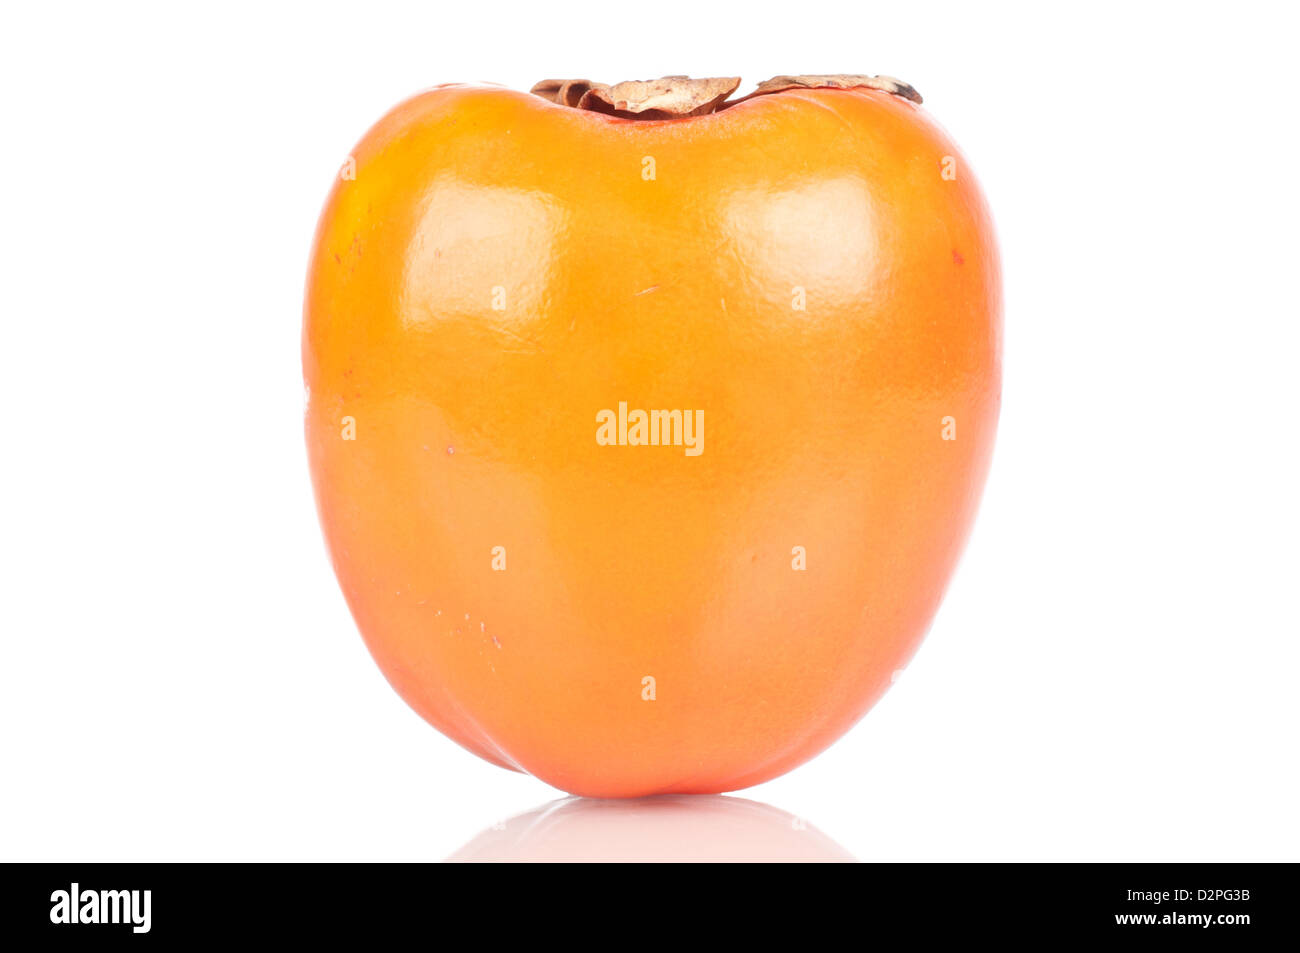 Persimmon over white reflective background. - Stock Image